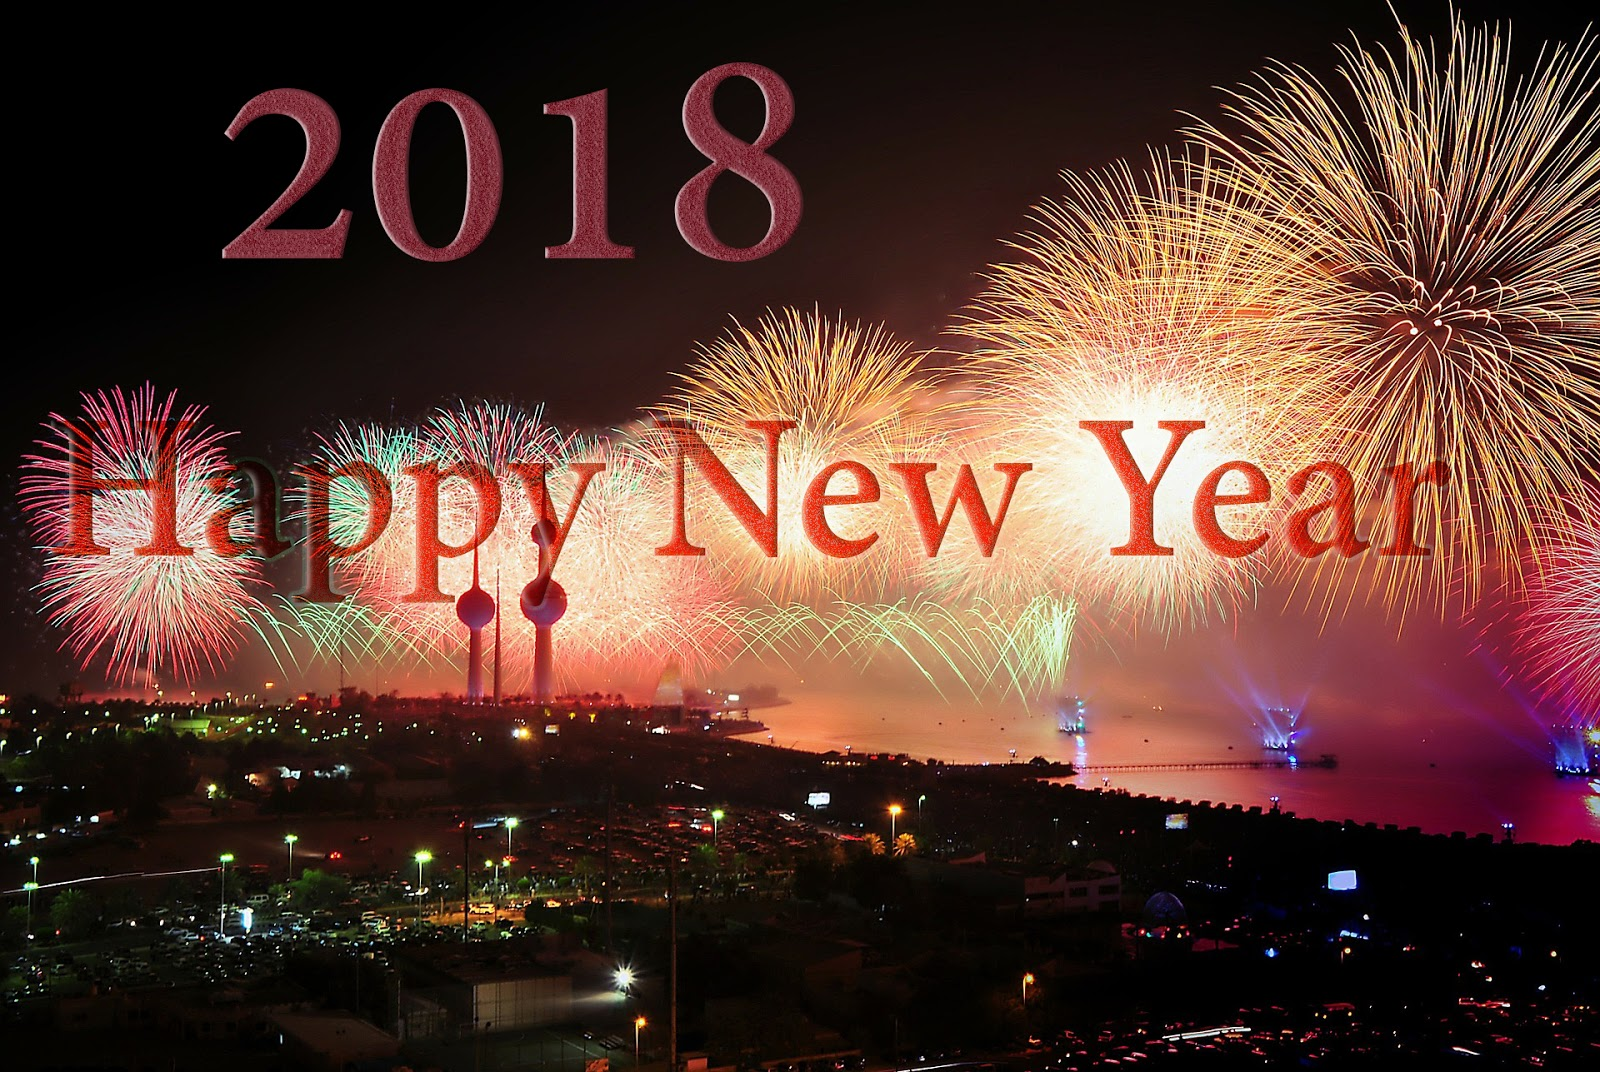 Download Happy New Year 2018 Wallpapers 50 Plus Designs